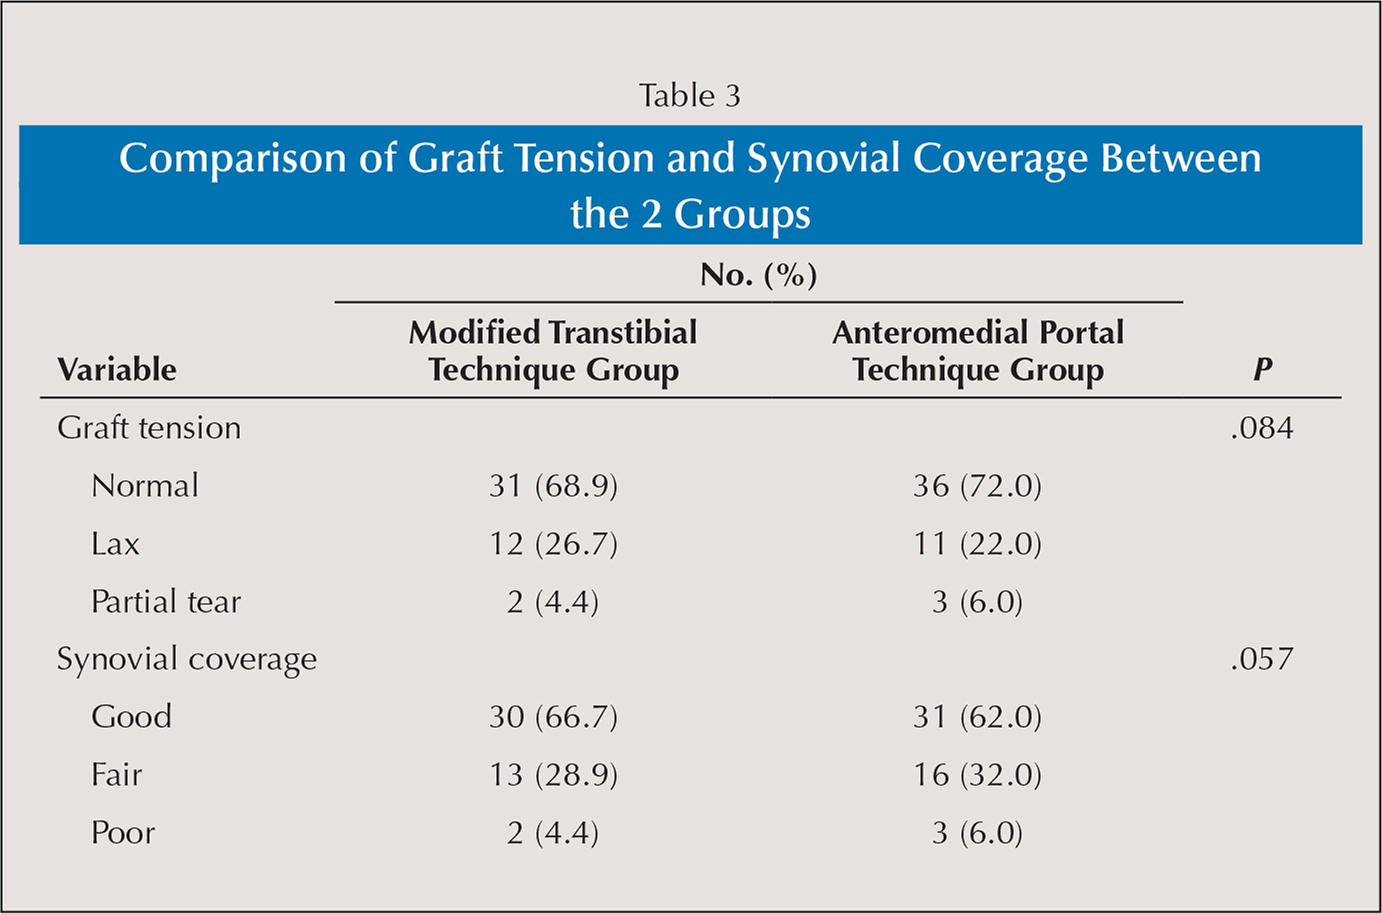 Comparison of Graft Tension and Synovial Coverage Between the 2 Groups